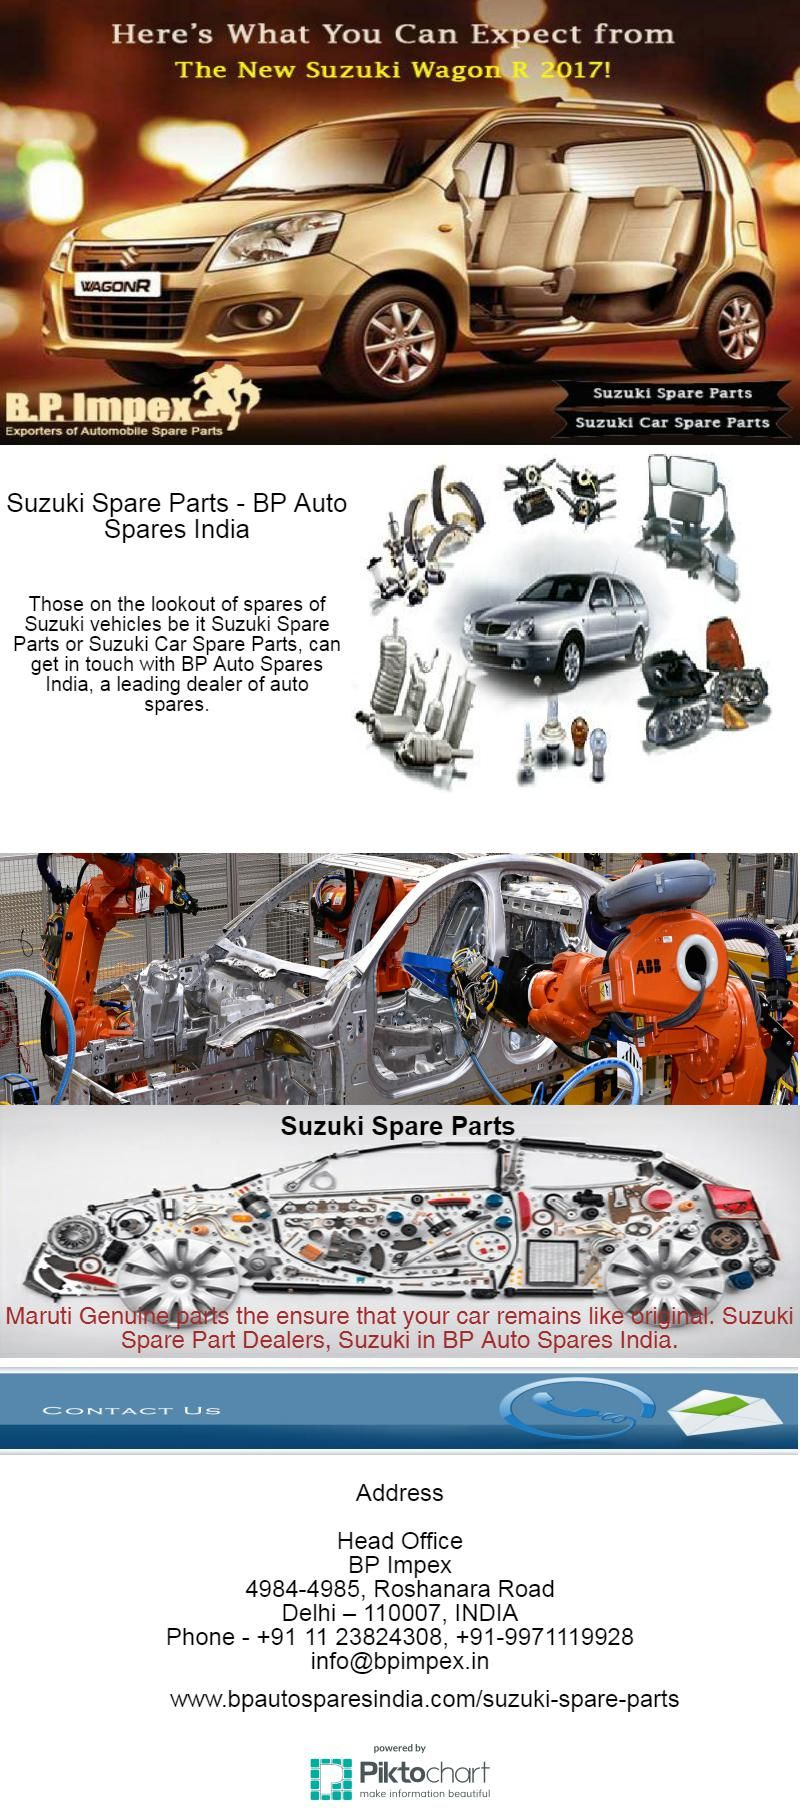 Maruti Genuine parts the ensure that your car remains like